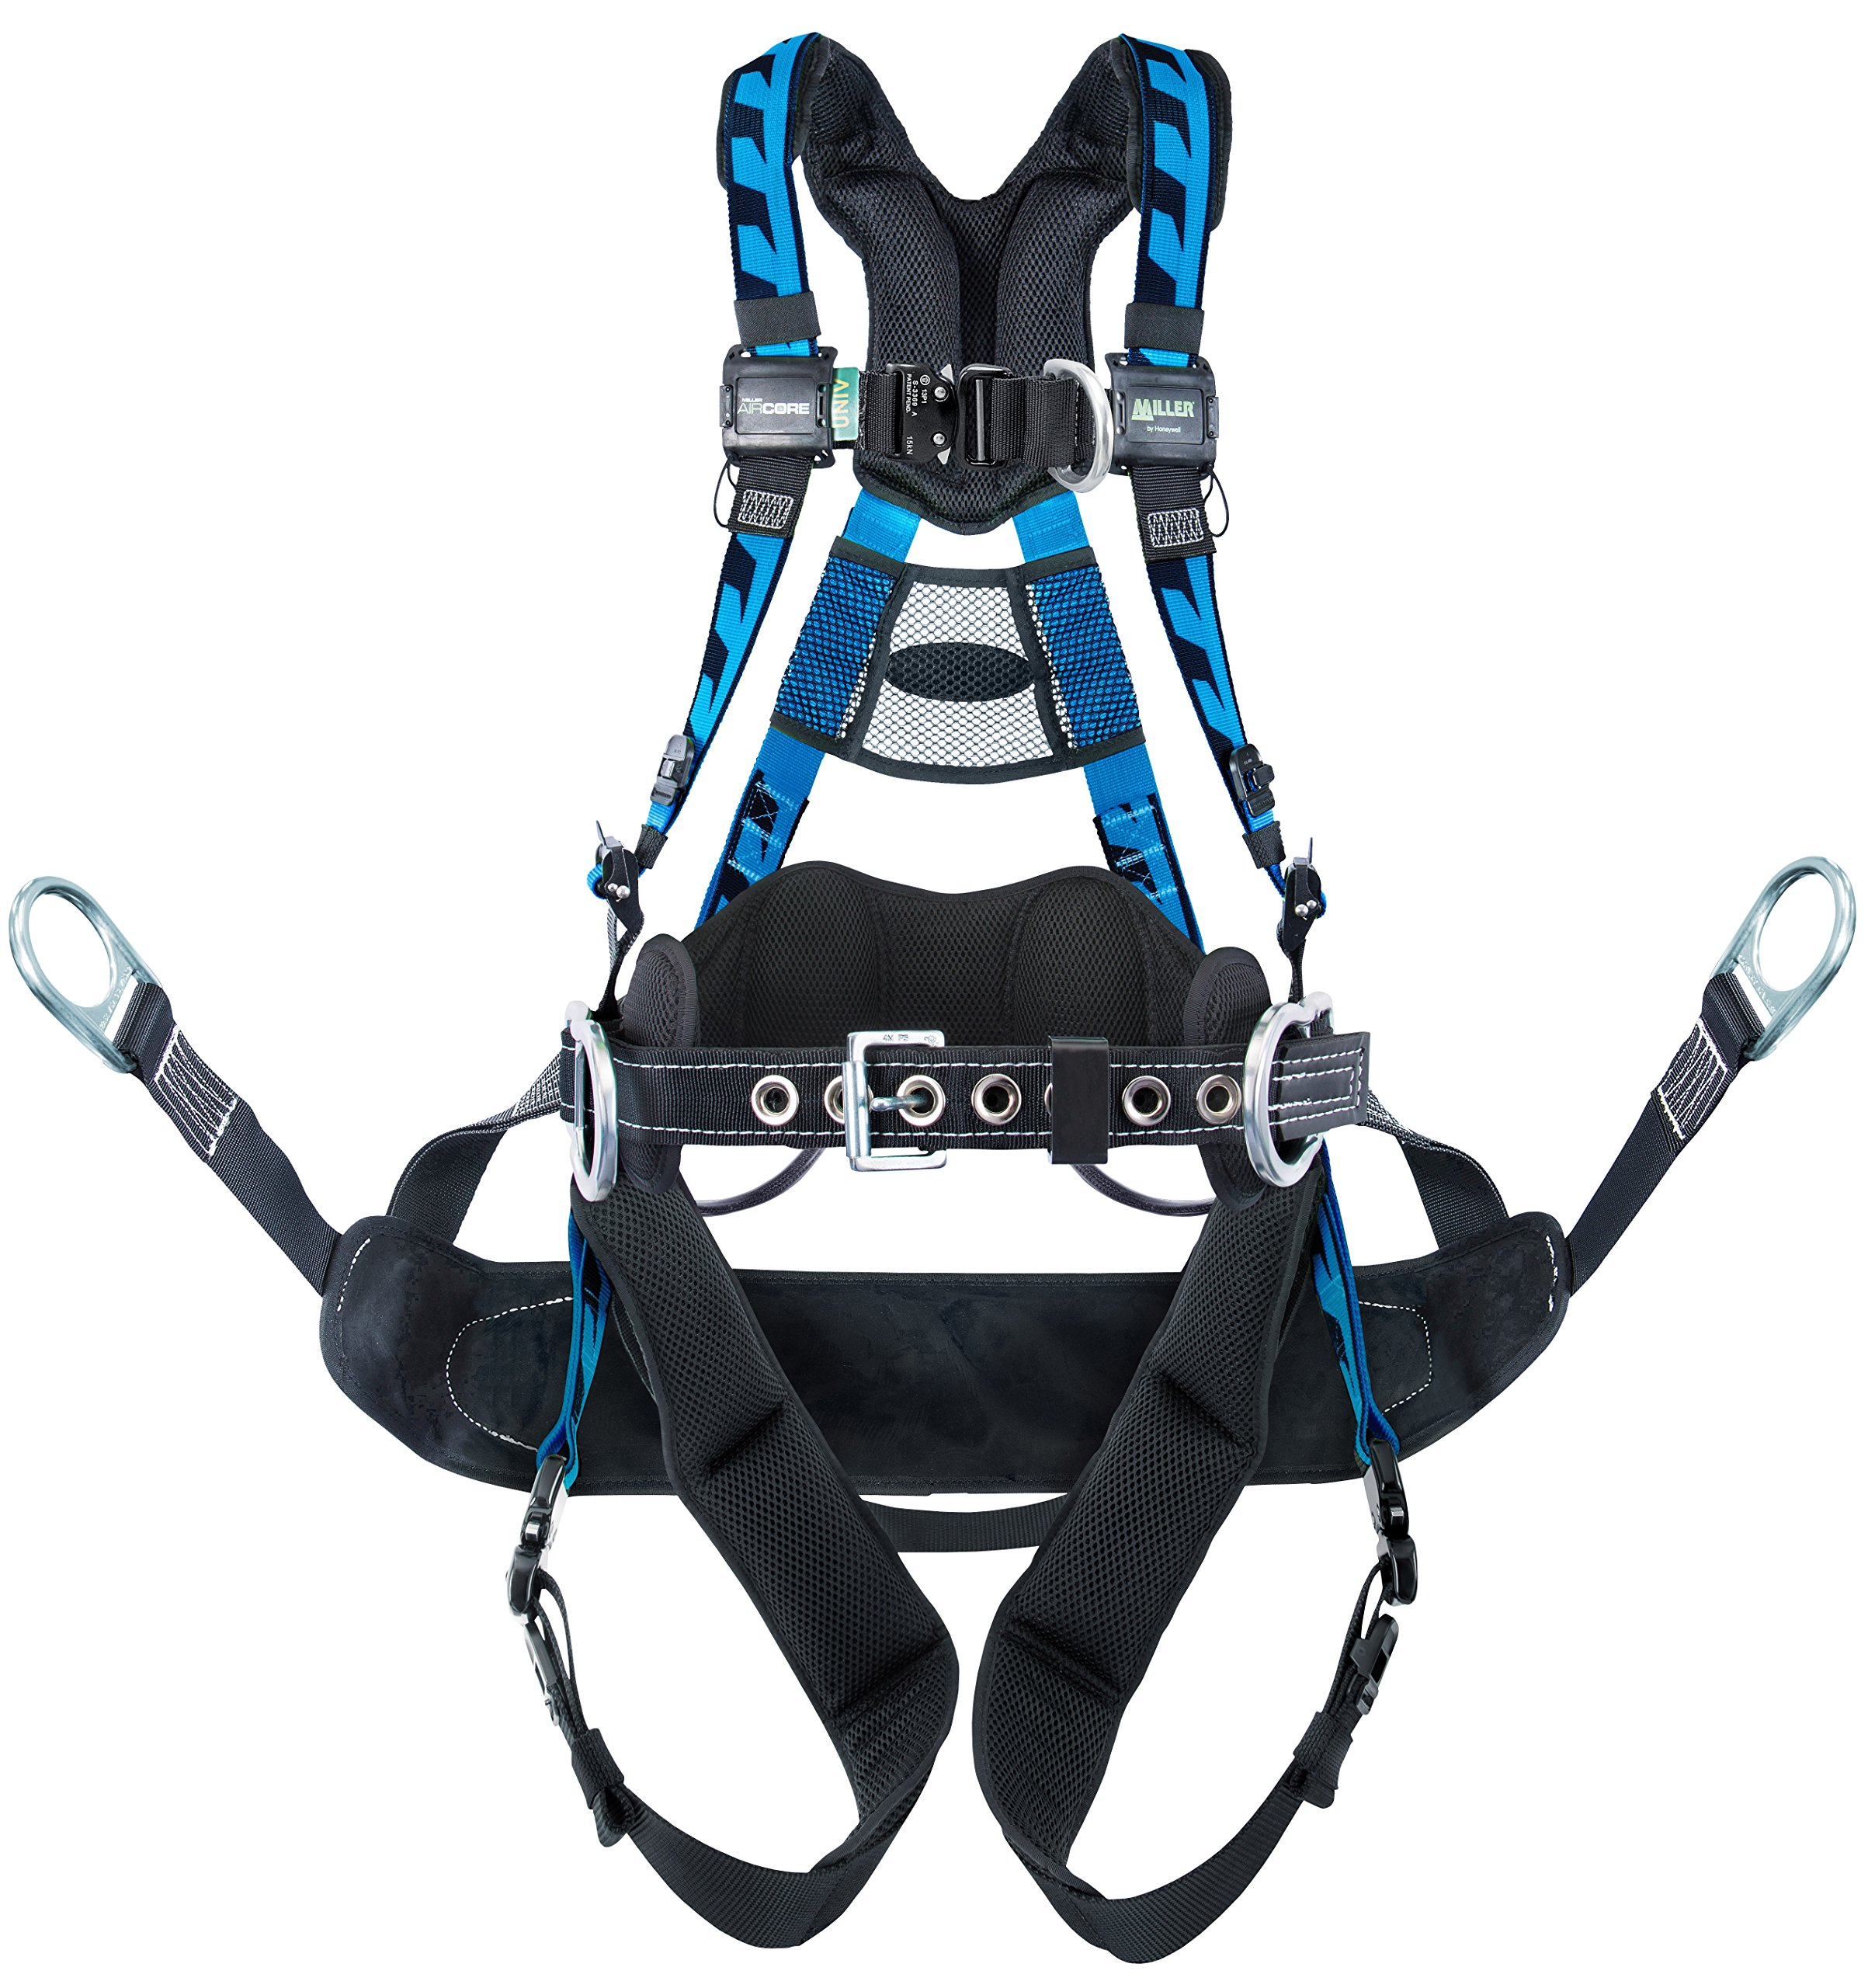 Miller by Honeywell AAT-QCBCUB Aircore Tower Climbing Harness with Aluminum Hardware Quick Connect Chest and Leg Straps by Honeywell